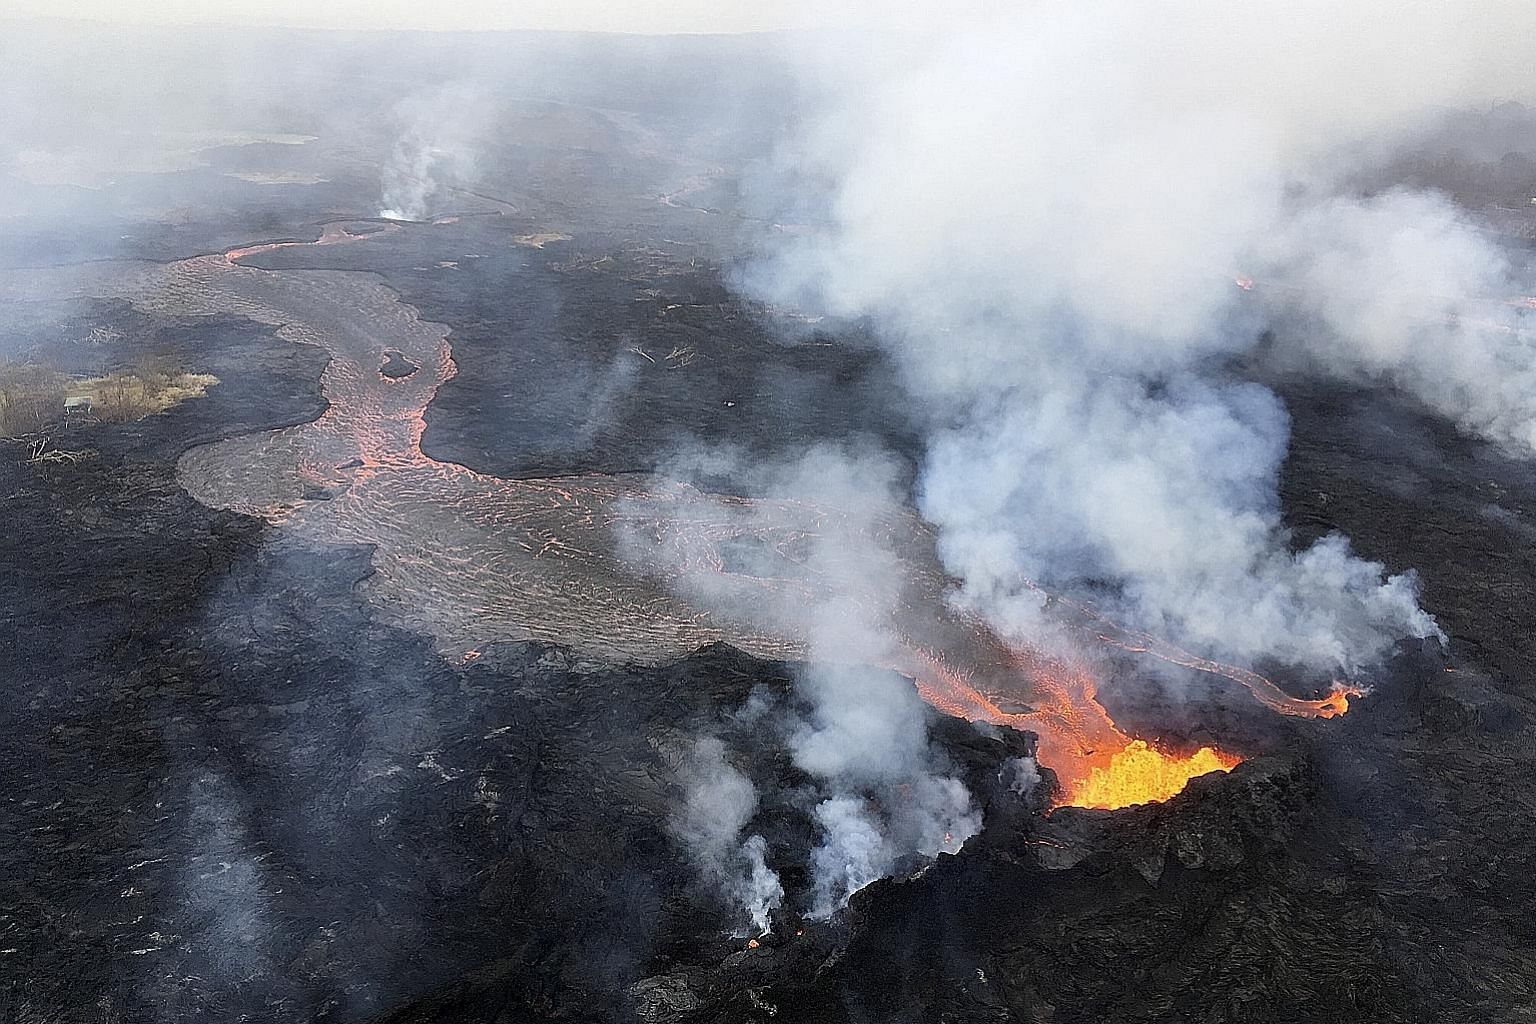 """Channellised lava flows from fissures on Kilauea in Hawaii spilling into the ocean on Thursday. Geologists said that after three weeks of escalating activity, Kilauea volcano has entered a """"steady state"""" of eruption."""